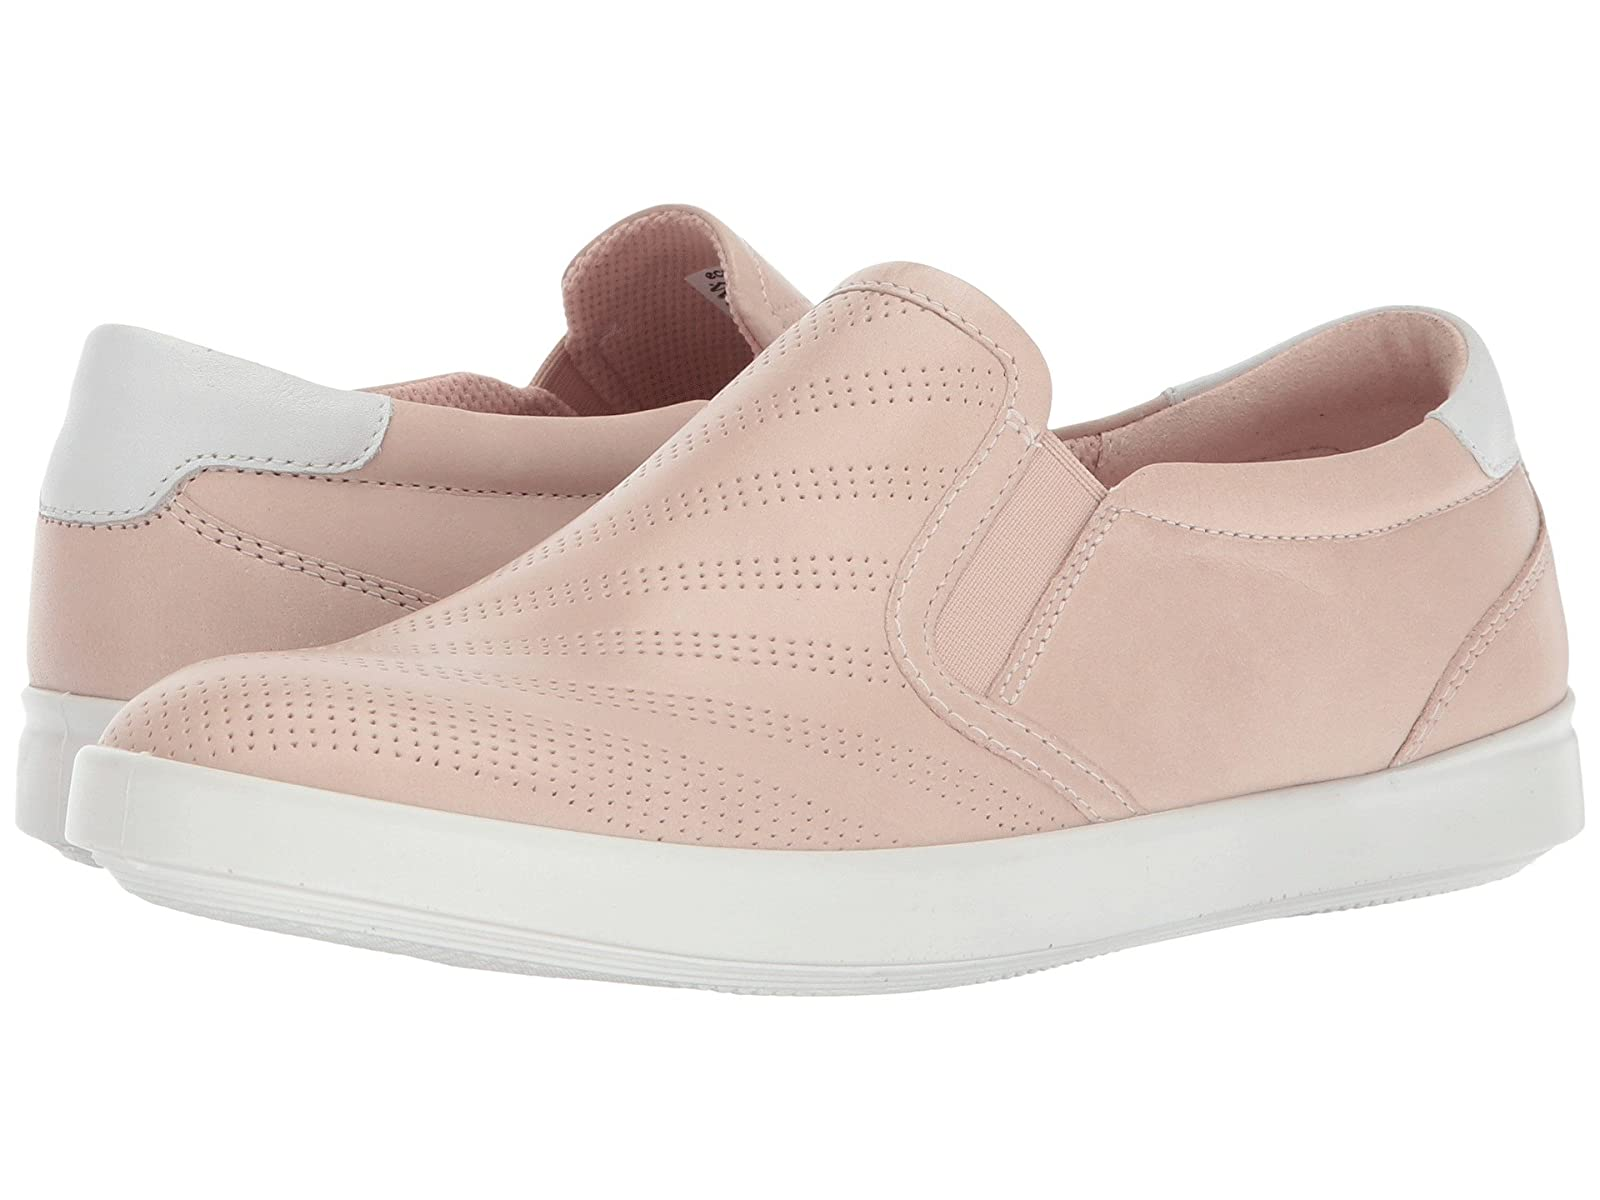 ECCO Aimee Perforated Slip-OnCheap and distinctive eye-catching shoes